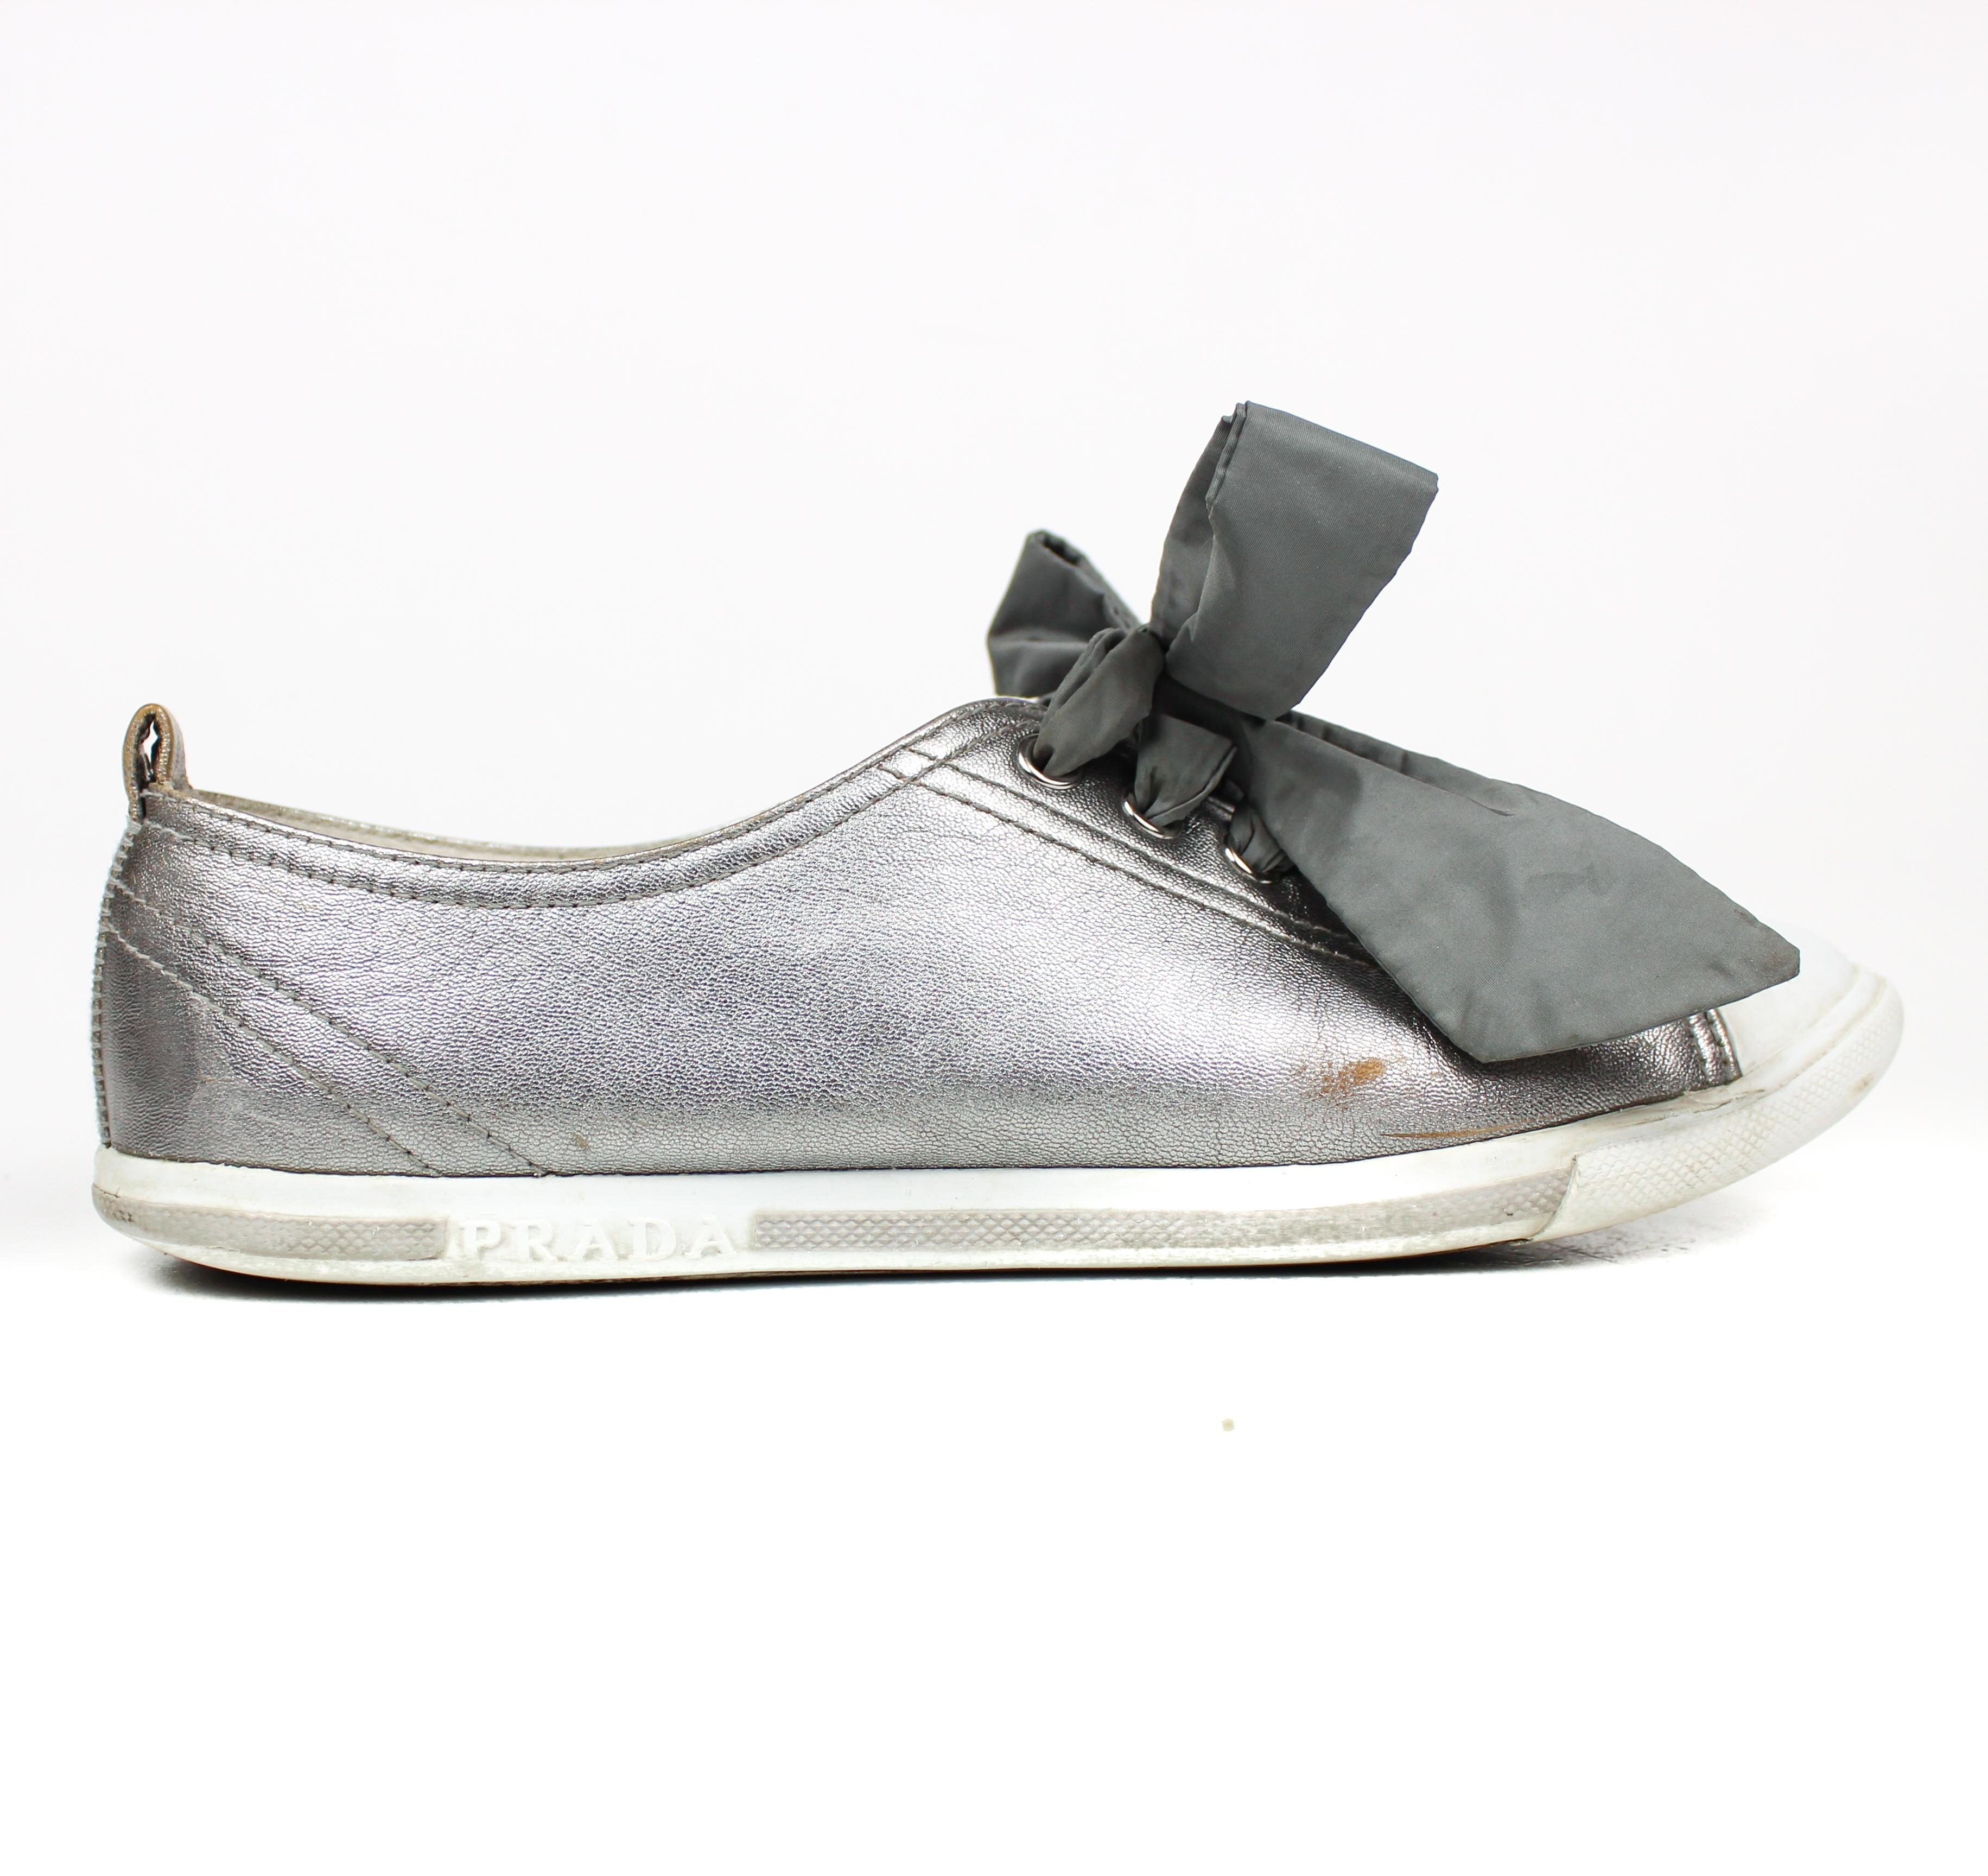 prada bow sneakers silver athletic shoes on sale 75